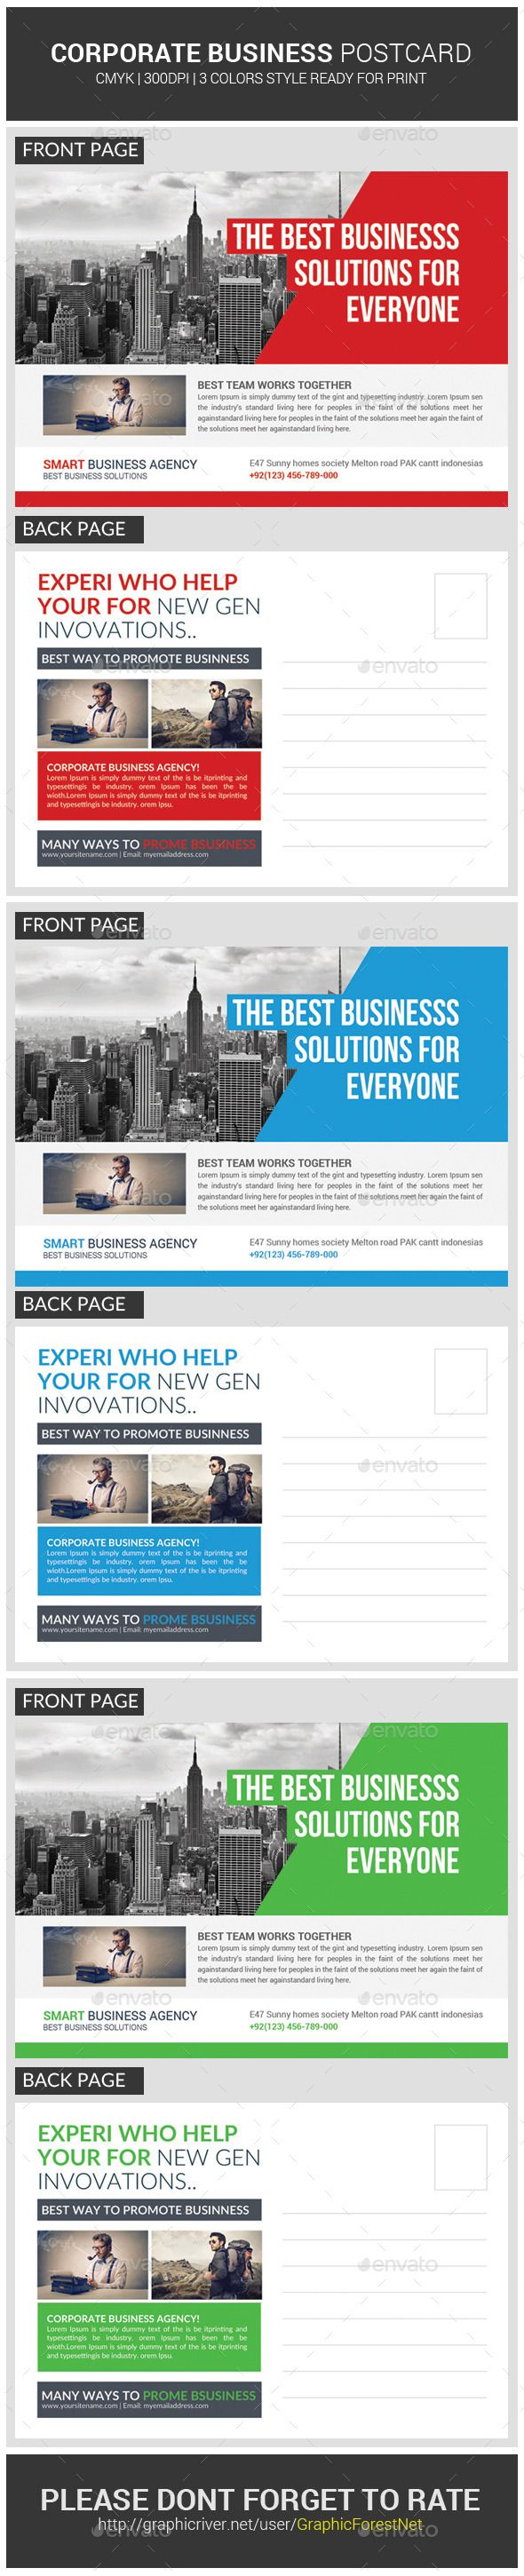 Corporate Business Postcard Template PSD   Buy and Download: http://graphicriver.net/item/corporate-business-postcard-template/9818095?ref=ksioks